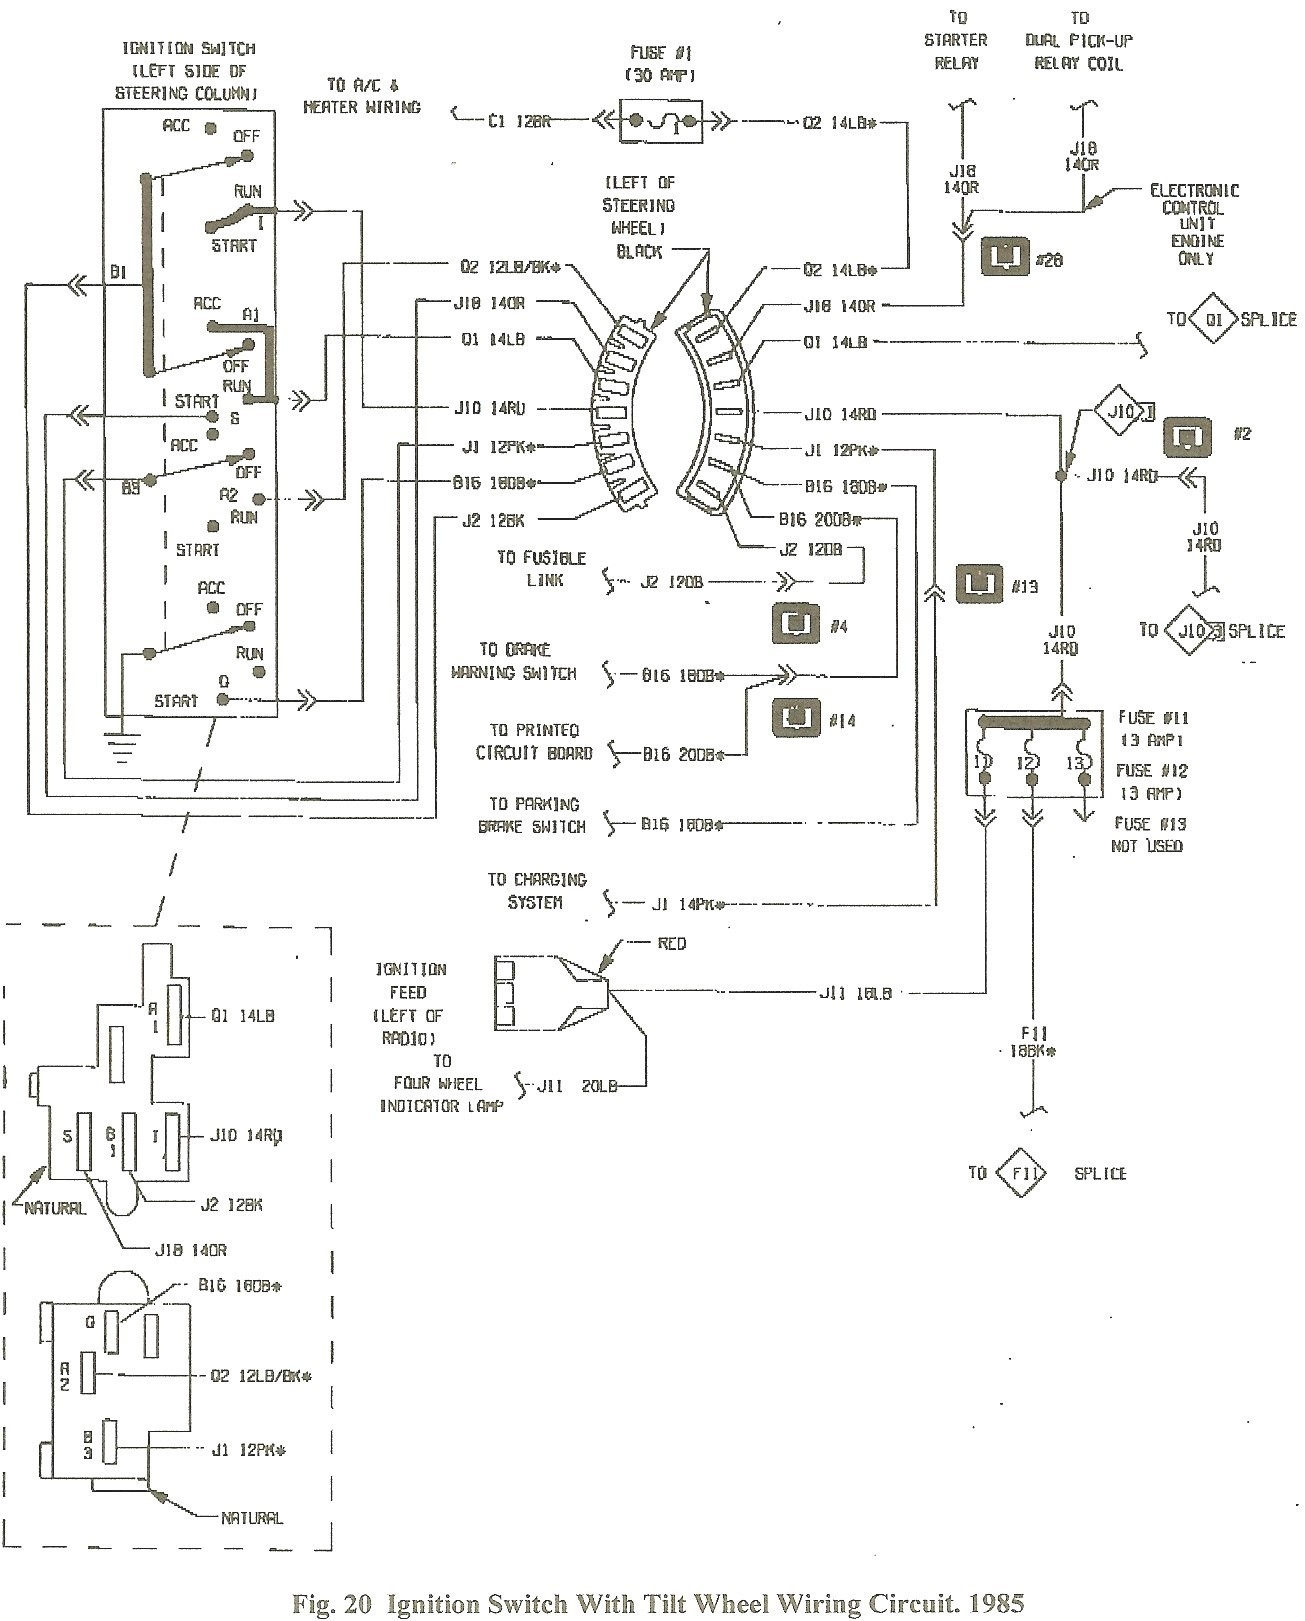 [DIAGRAM] Power Seat Wiring Diagram 2001 Dodge Ram Free